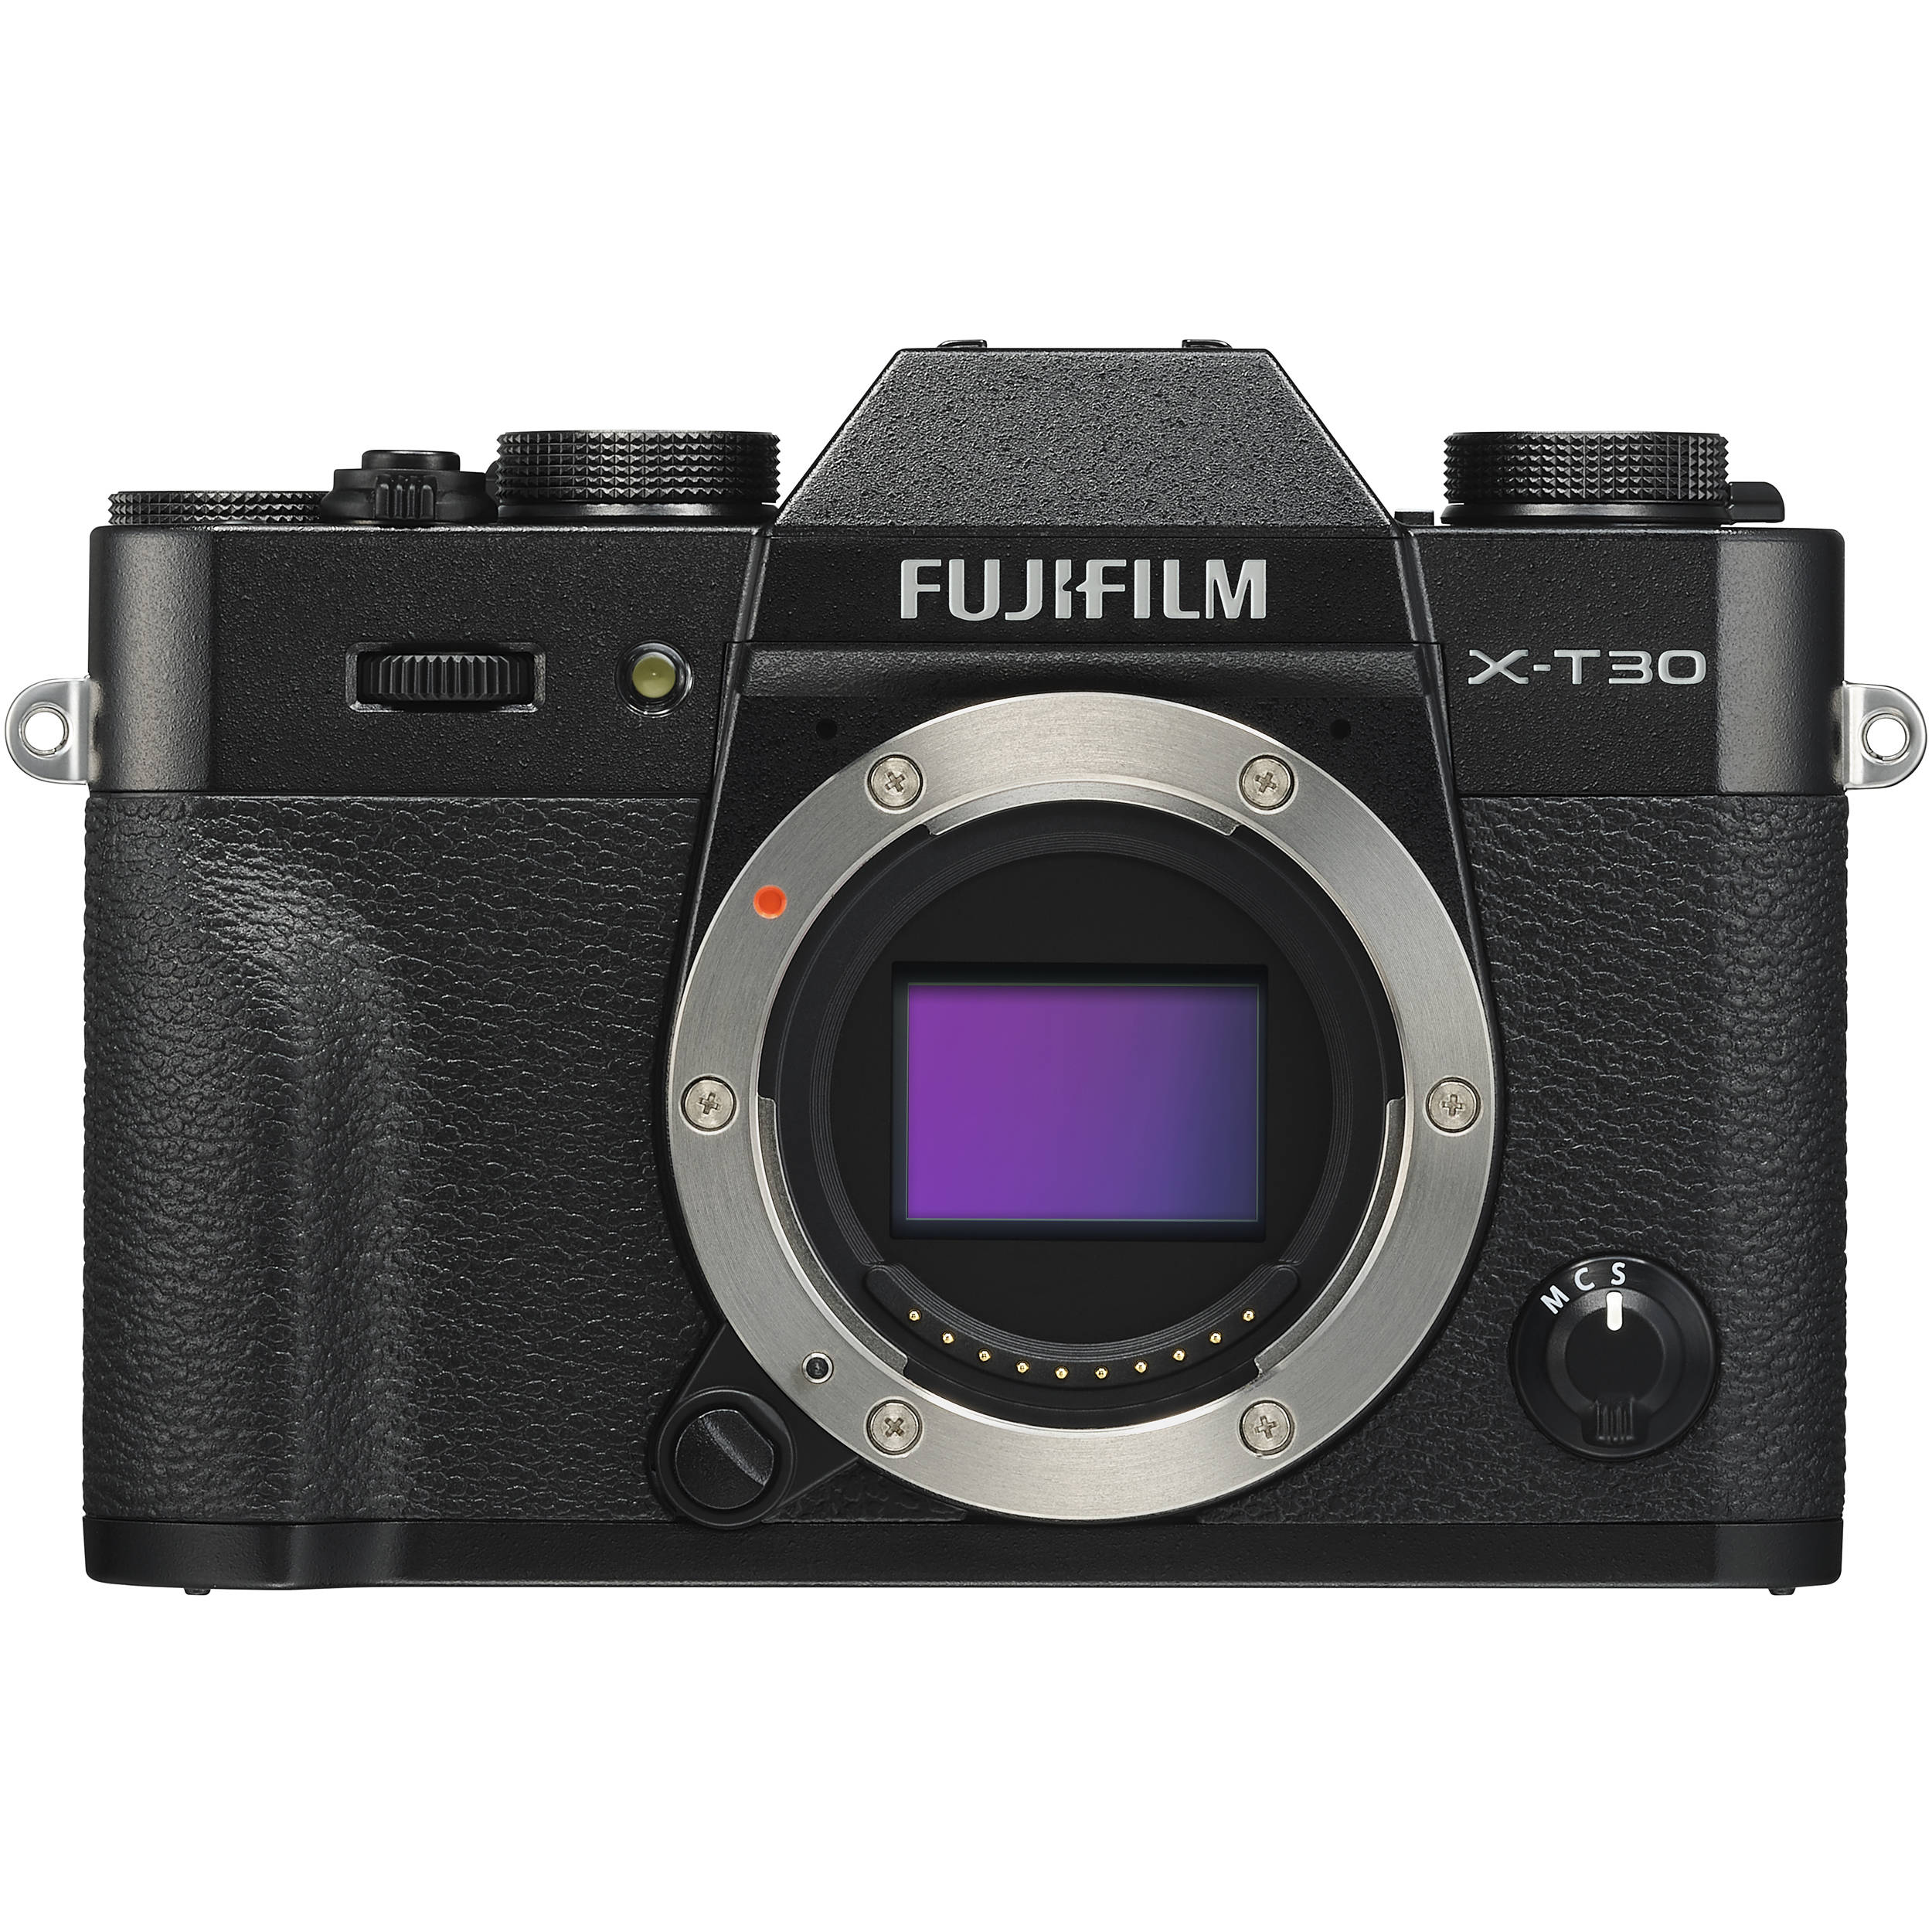 FUJIFILM X-T30 Mirrorless Camera Black (Body Only)